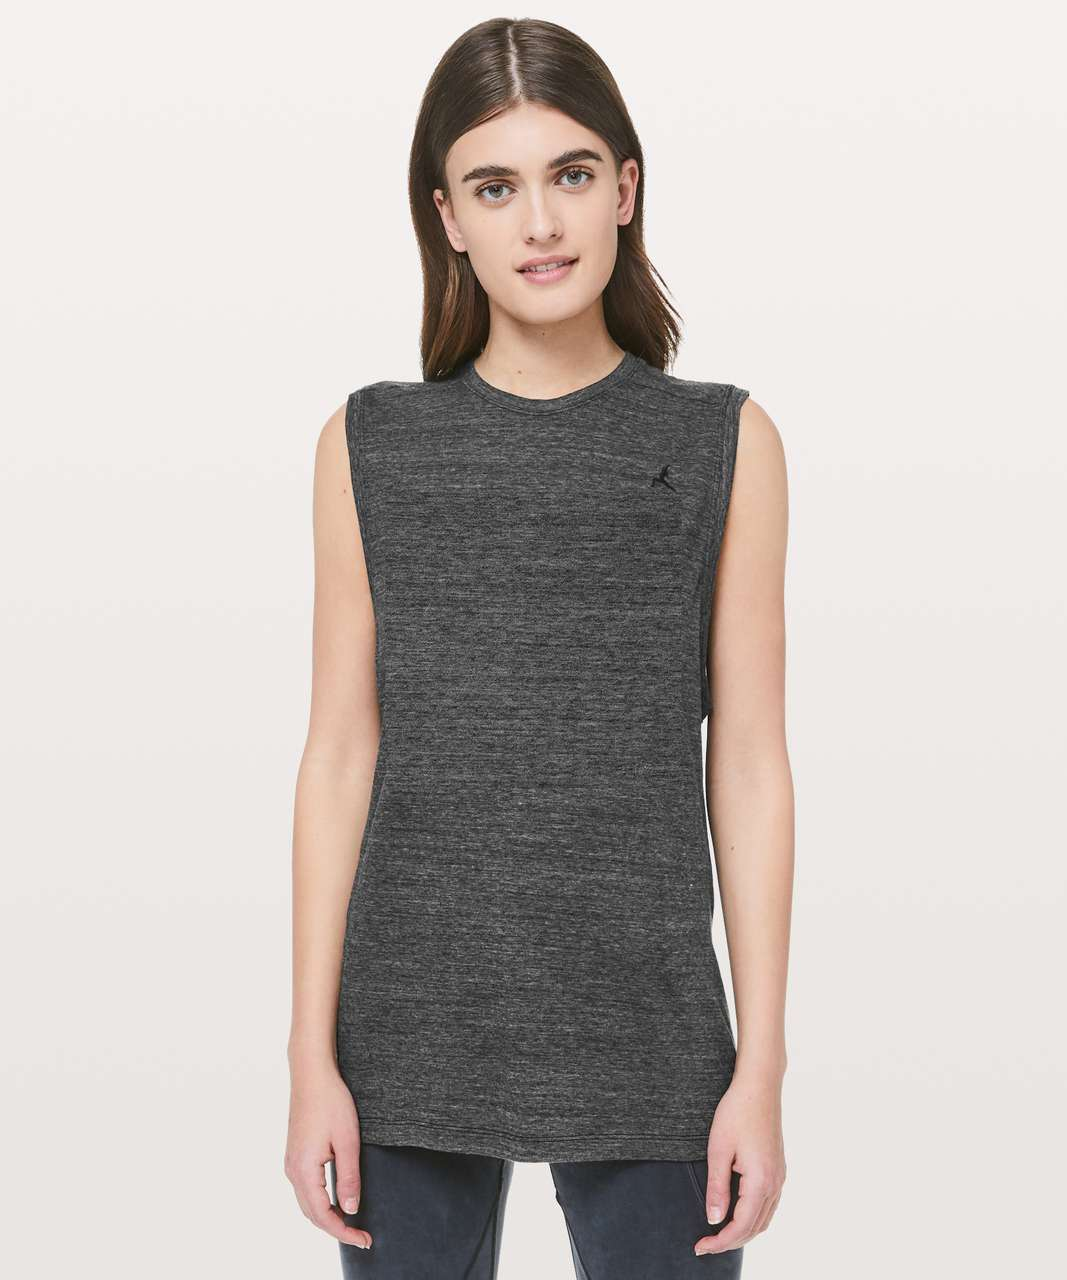 Lululemon Heii Tank *lululemon lab - Black